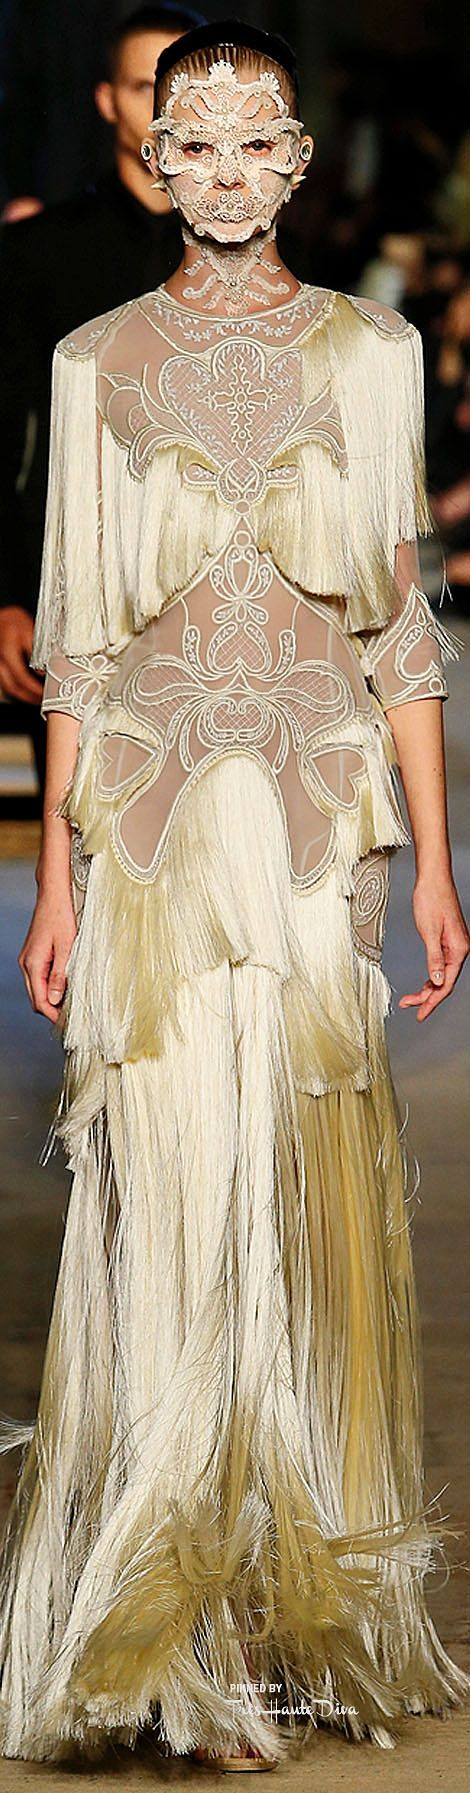 Givenchy Spring 2016 RTW ♔ Très Haute Diva ♔  For more fashion visit my website at http://www.treshautediva.com/